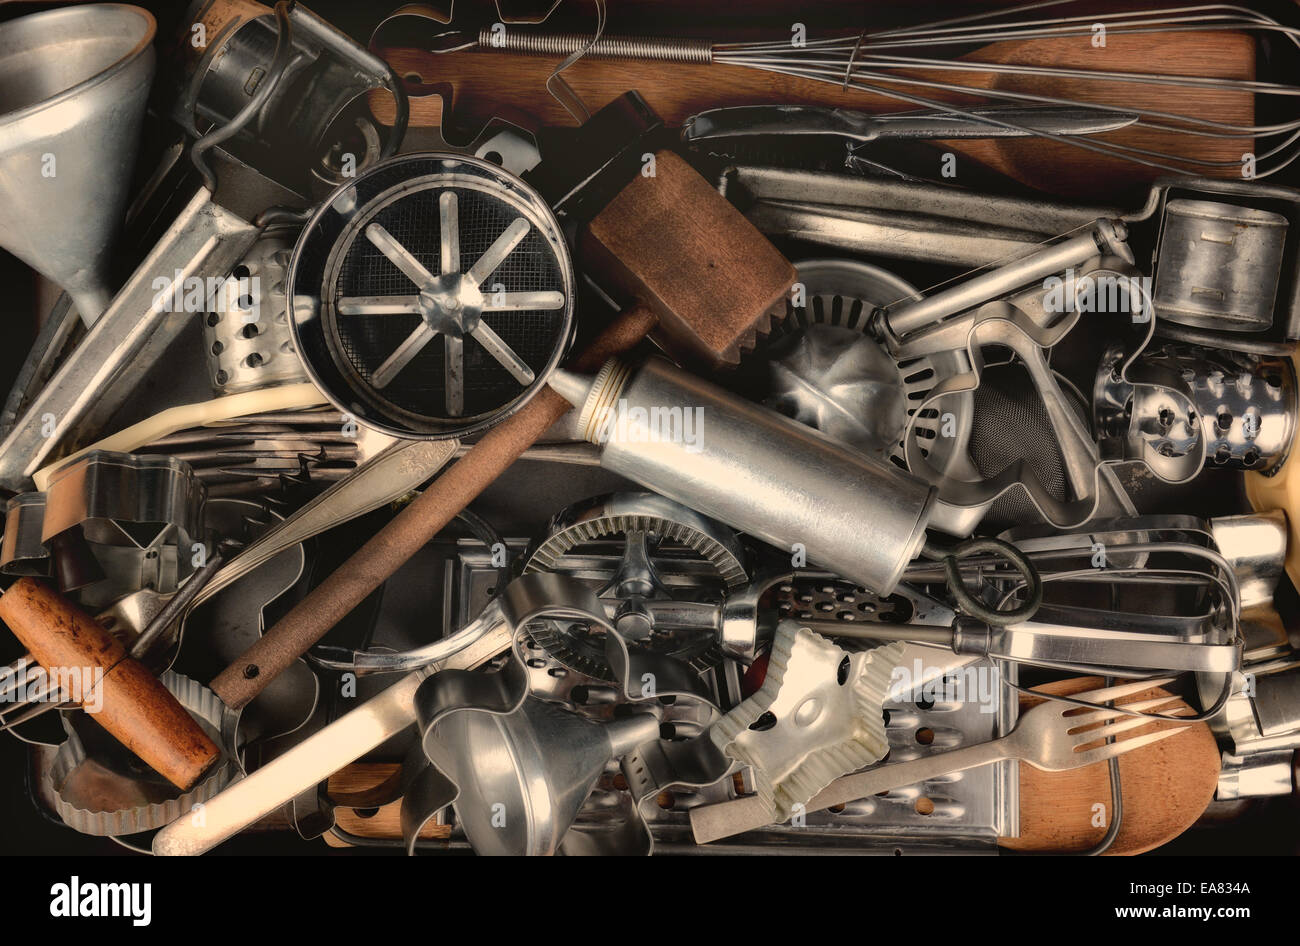 Closeup of a group of old metal and wood kitchen utensils. Items include: sifter, funnel, cookie cutters, forks, - Stock Image